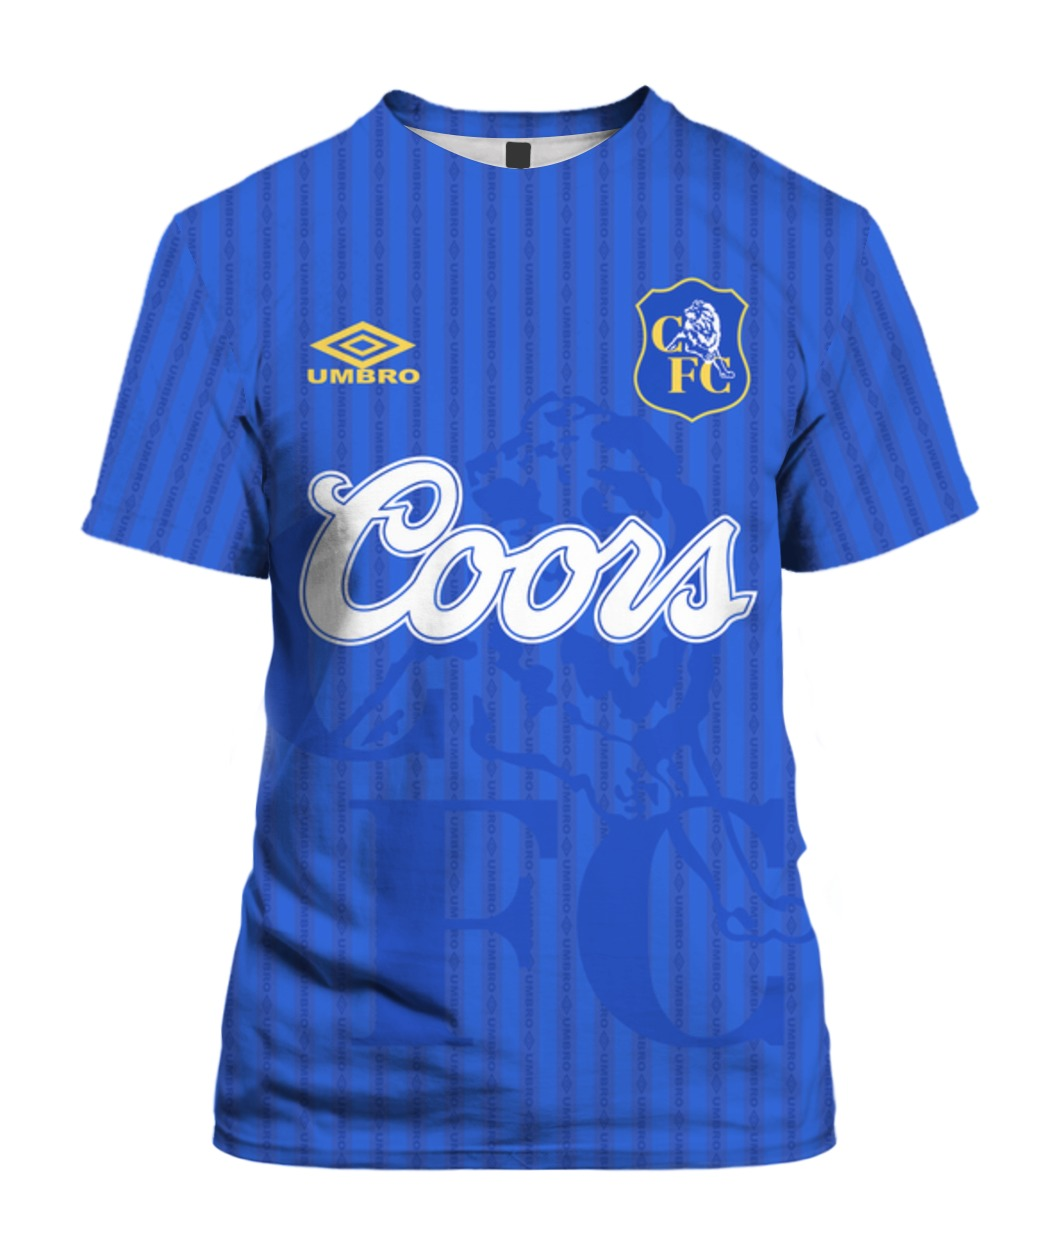 1995-97 Chelsea T-Shirt - newday.store Shirts   Shop Funny ...